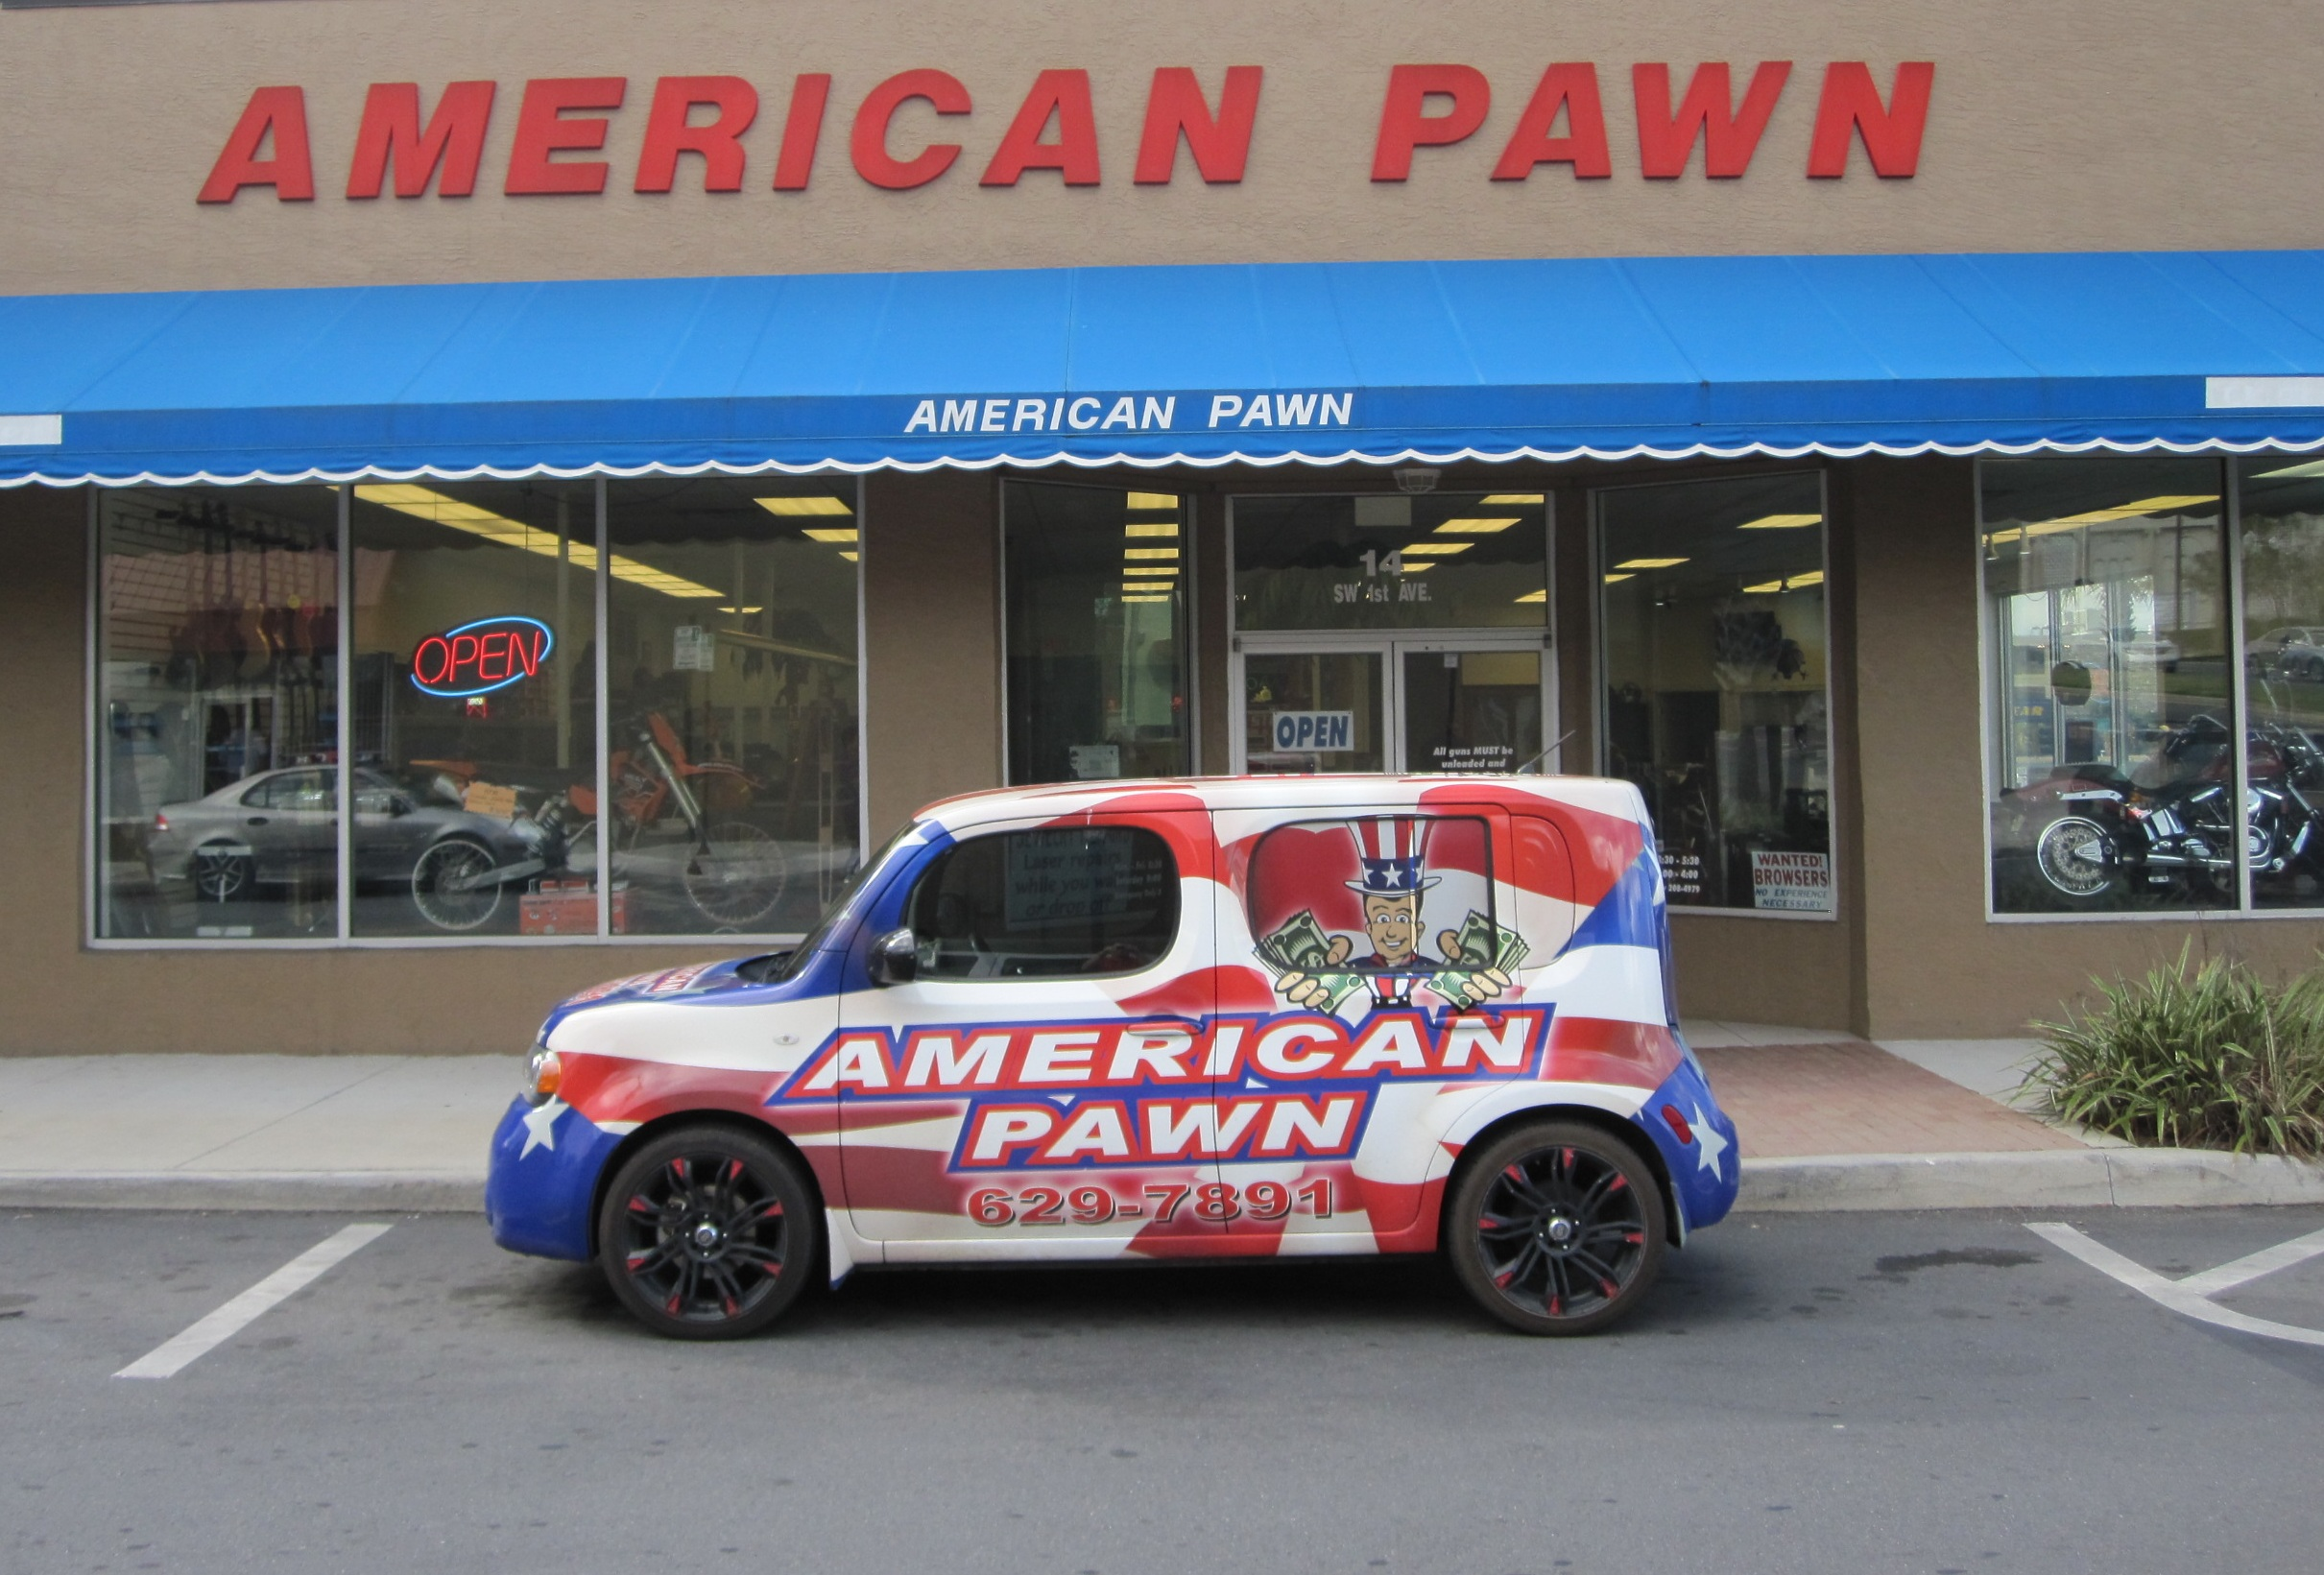 Official Vehicle of American Pawn!